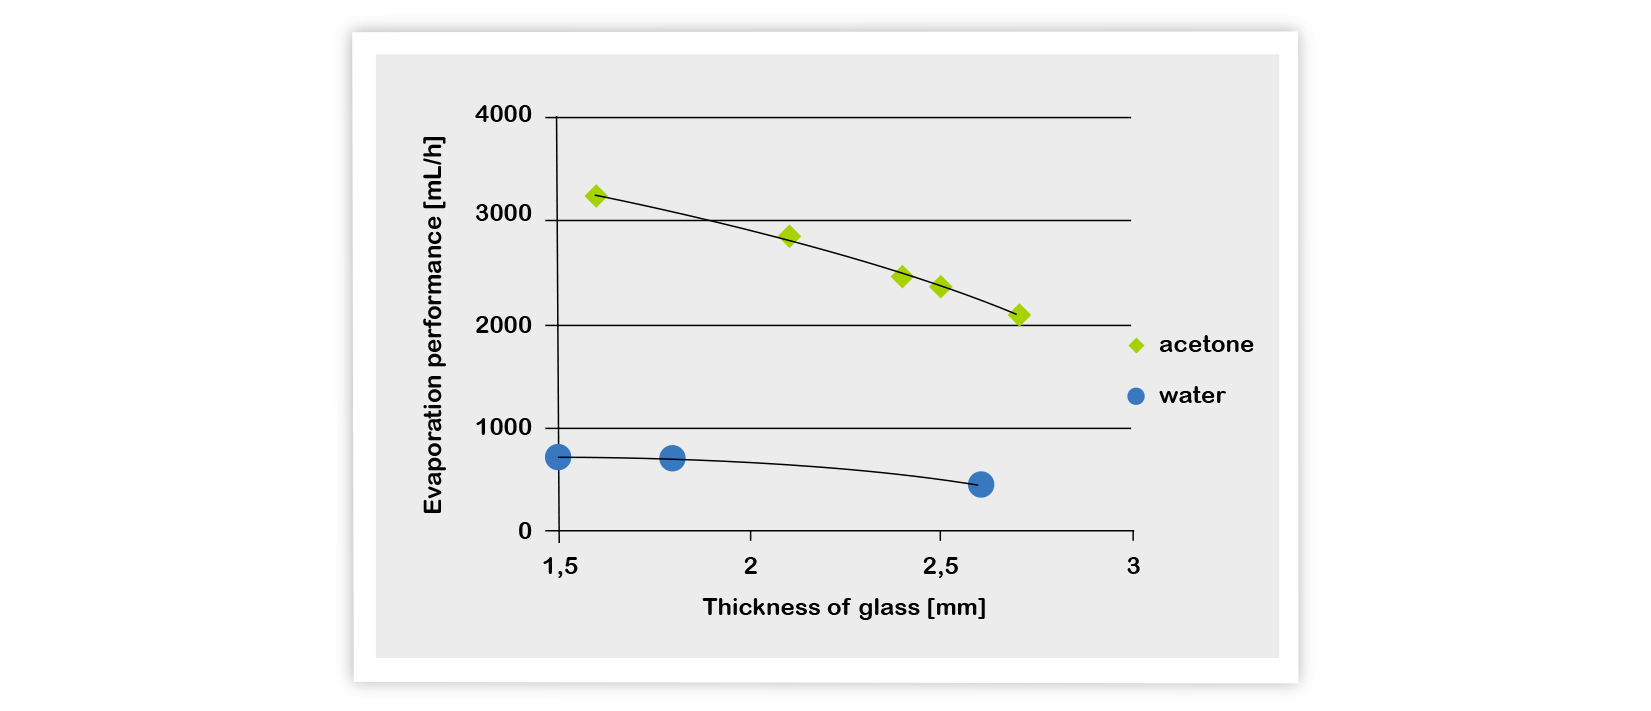 evaporation, flask, glass thickness of flask, evaporation flask, evaporation rate